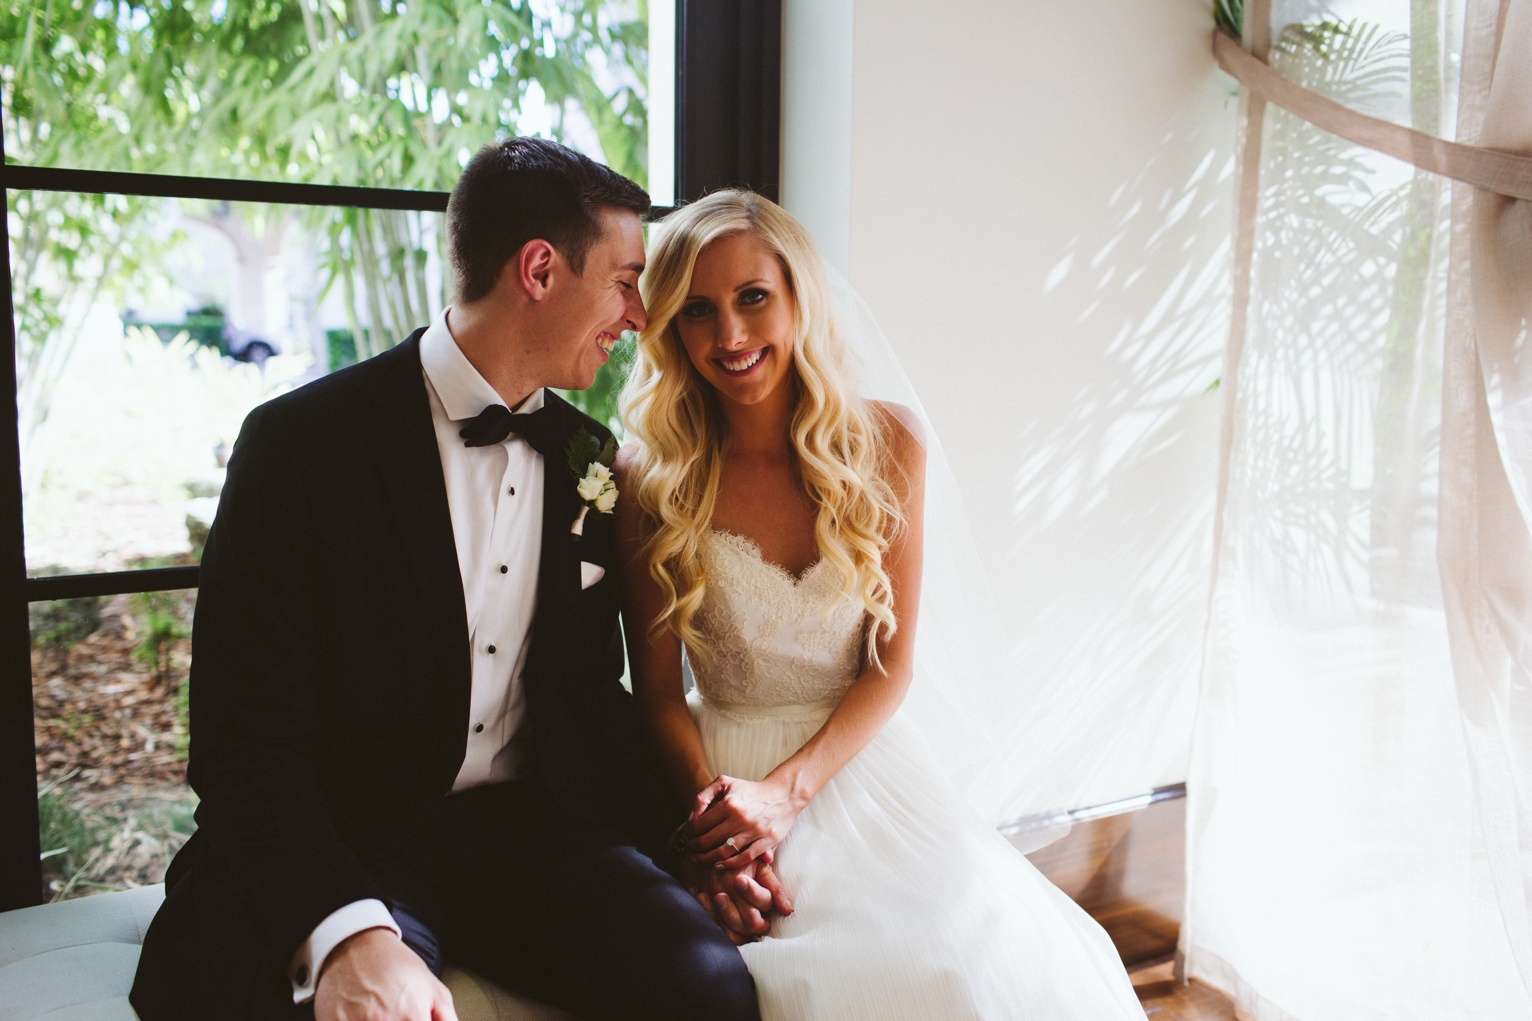 Dreamtownco.com_blog_Jordan&Lindsey_Wedding__0116.jpg